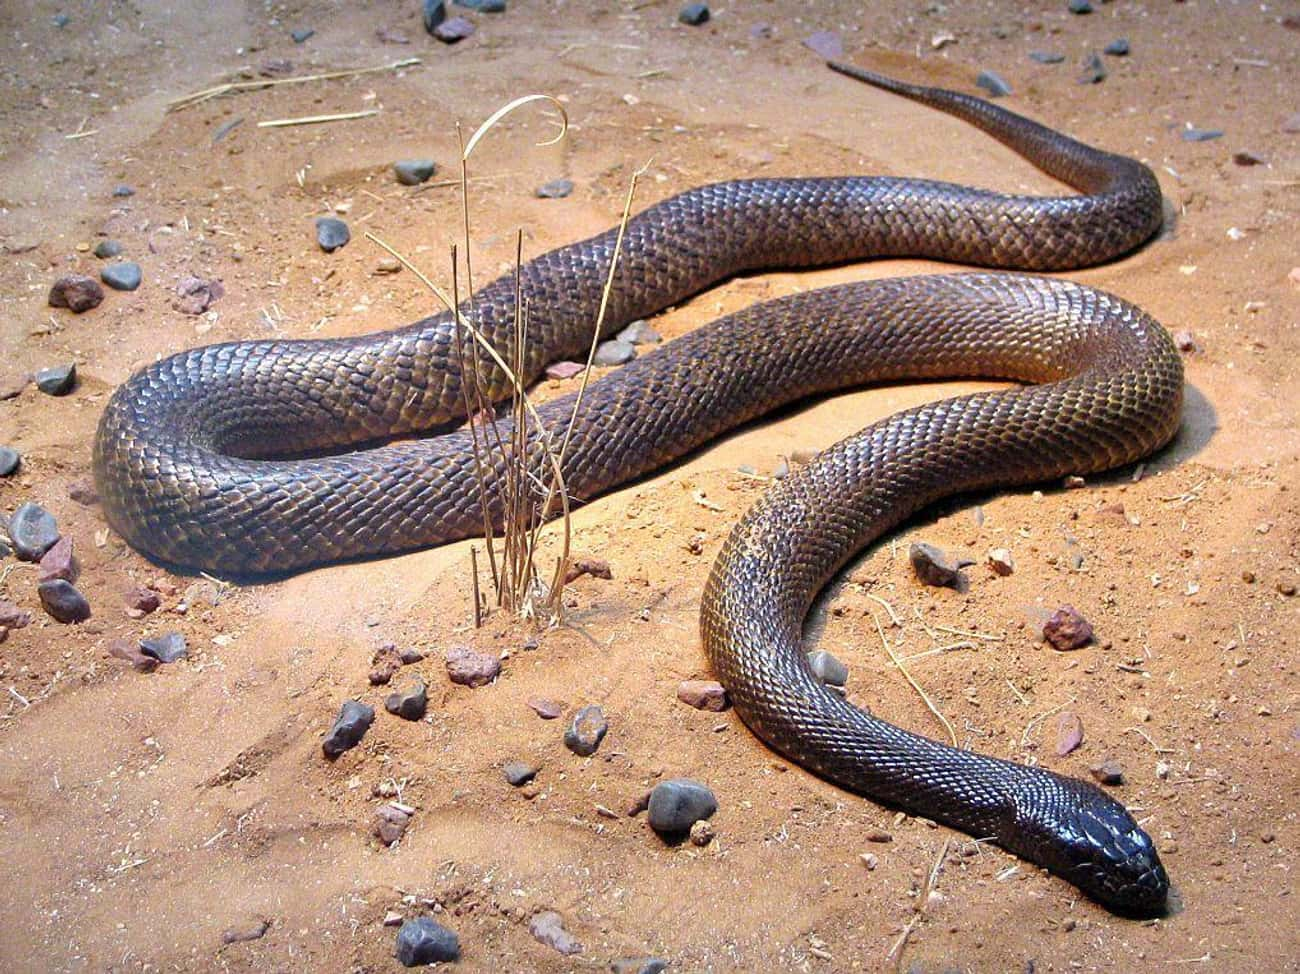 The Inland Taipan Is The Most  is listed (or ranked) 3 on the list Fun Facts You Should Know About Snakes